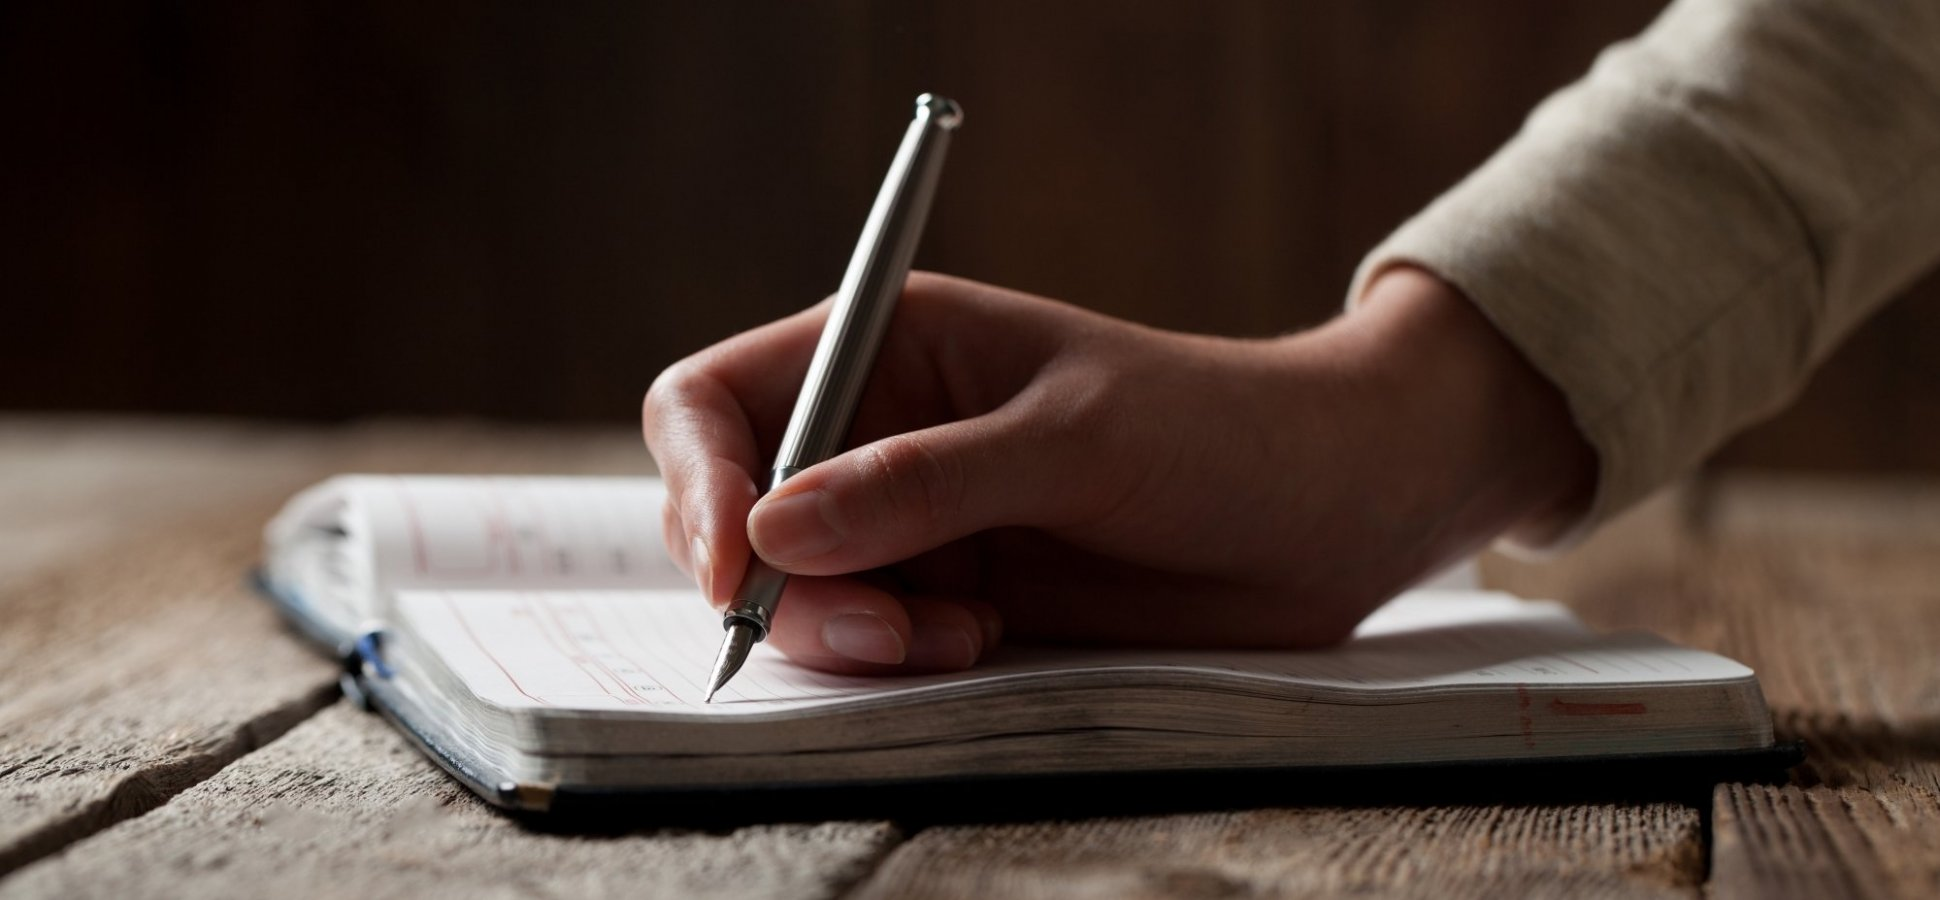 Could Committing to Improving Your Handwriting Pay Off?